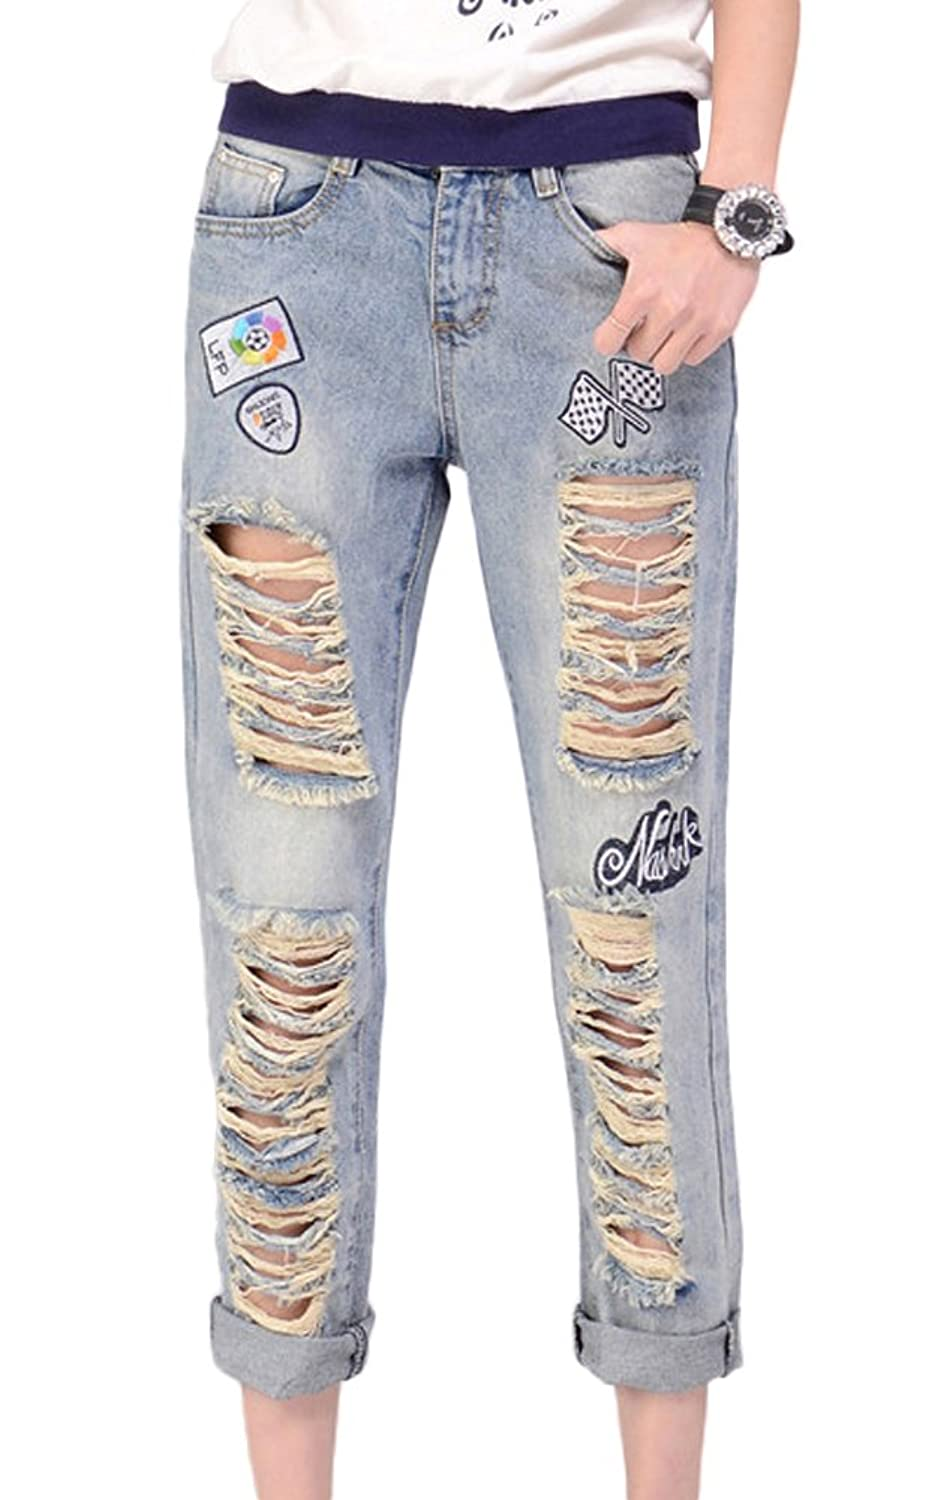 Chickle Women's Cotton Ripped Distressed Destory Ankle Jeans